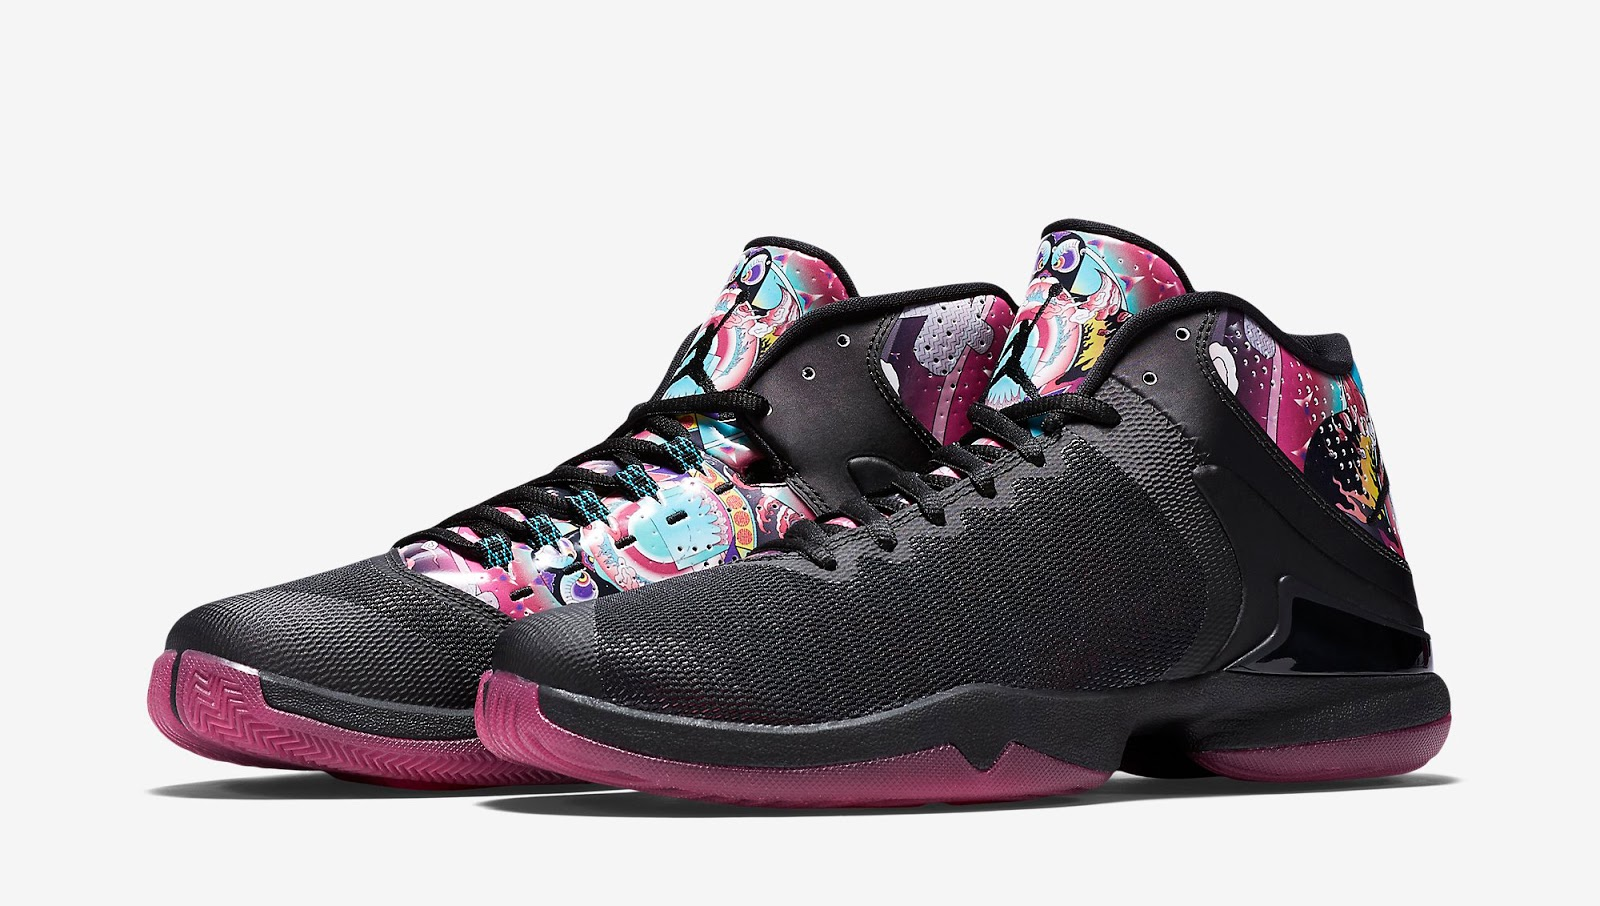 fdf5c4a98749d The latest colorway of the Jordan Super.Fly 4 PO hits stores this weekend.